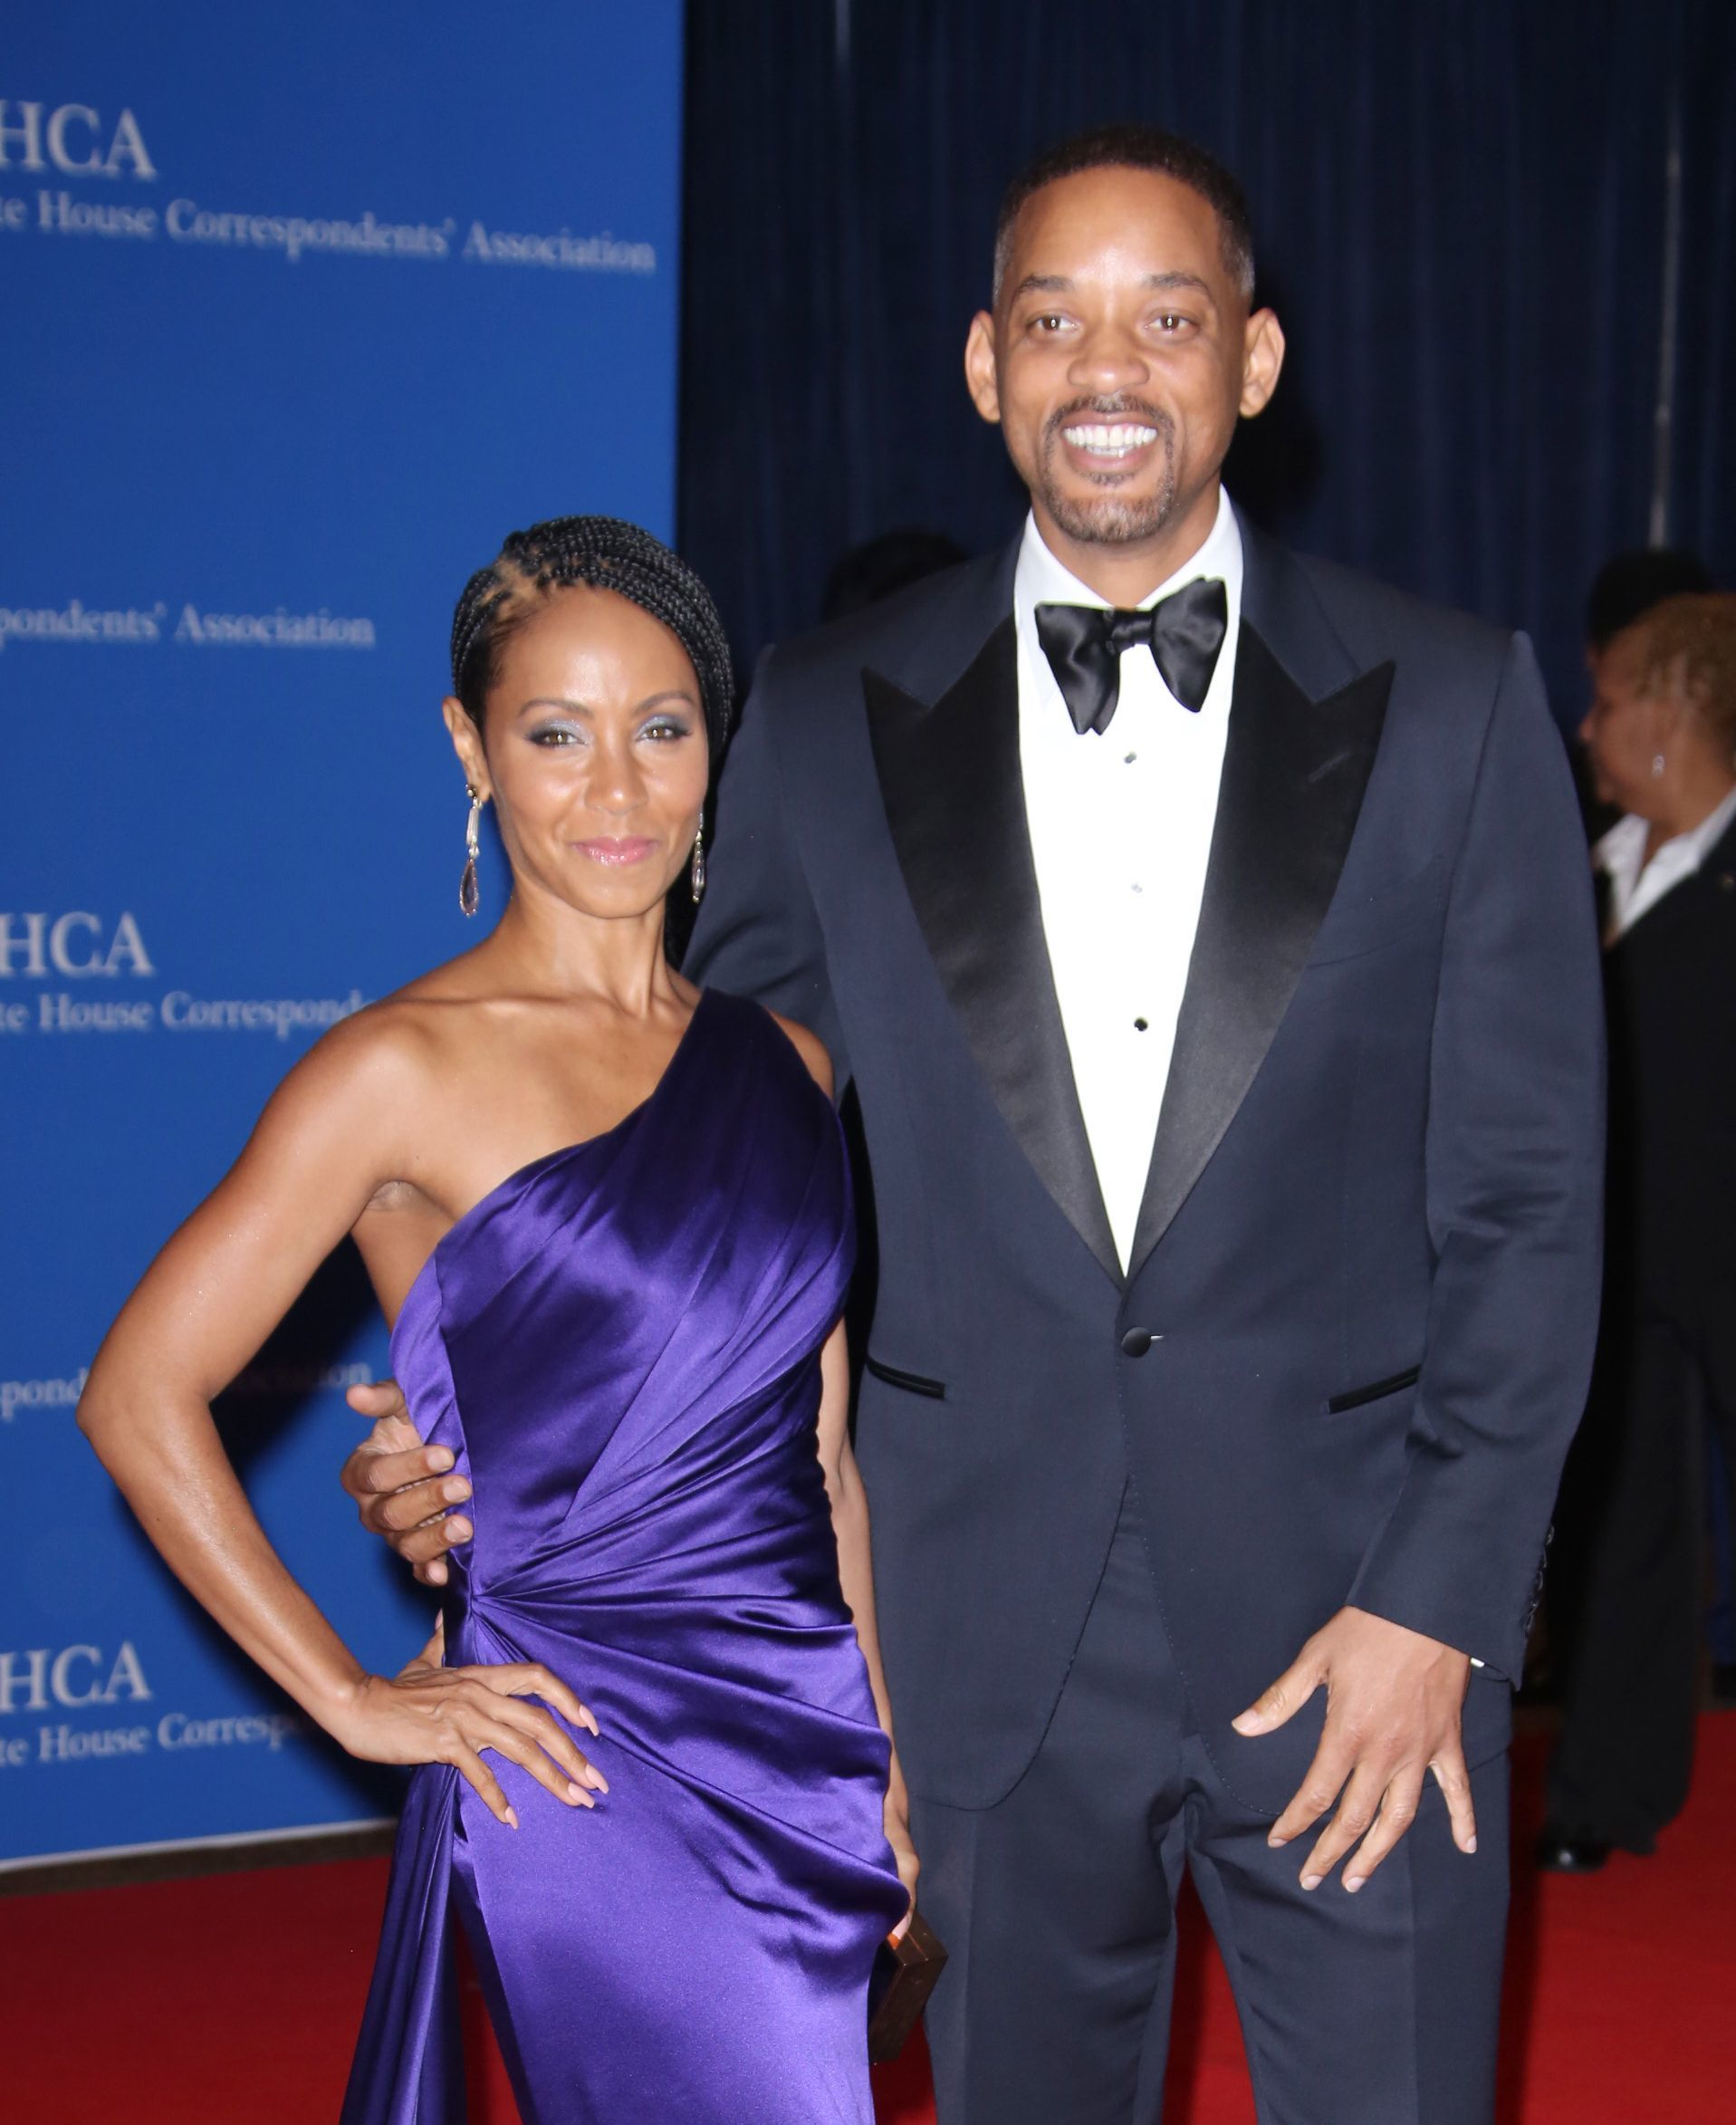 Jada Pinkett Smith and Will Smith attend the White House Correspondent's Association Dinner in Washington, DC, on April 30, 2016.